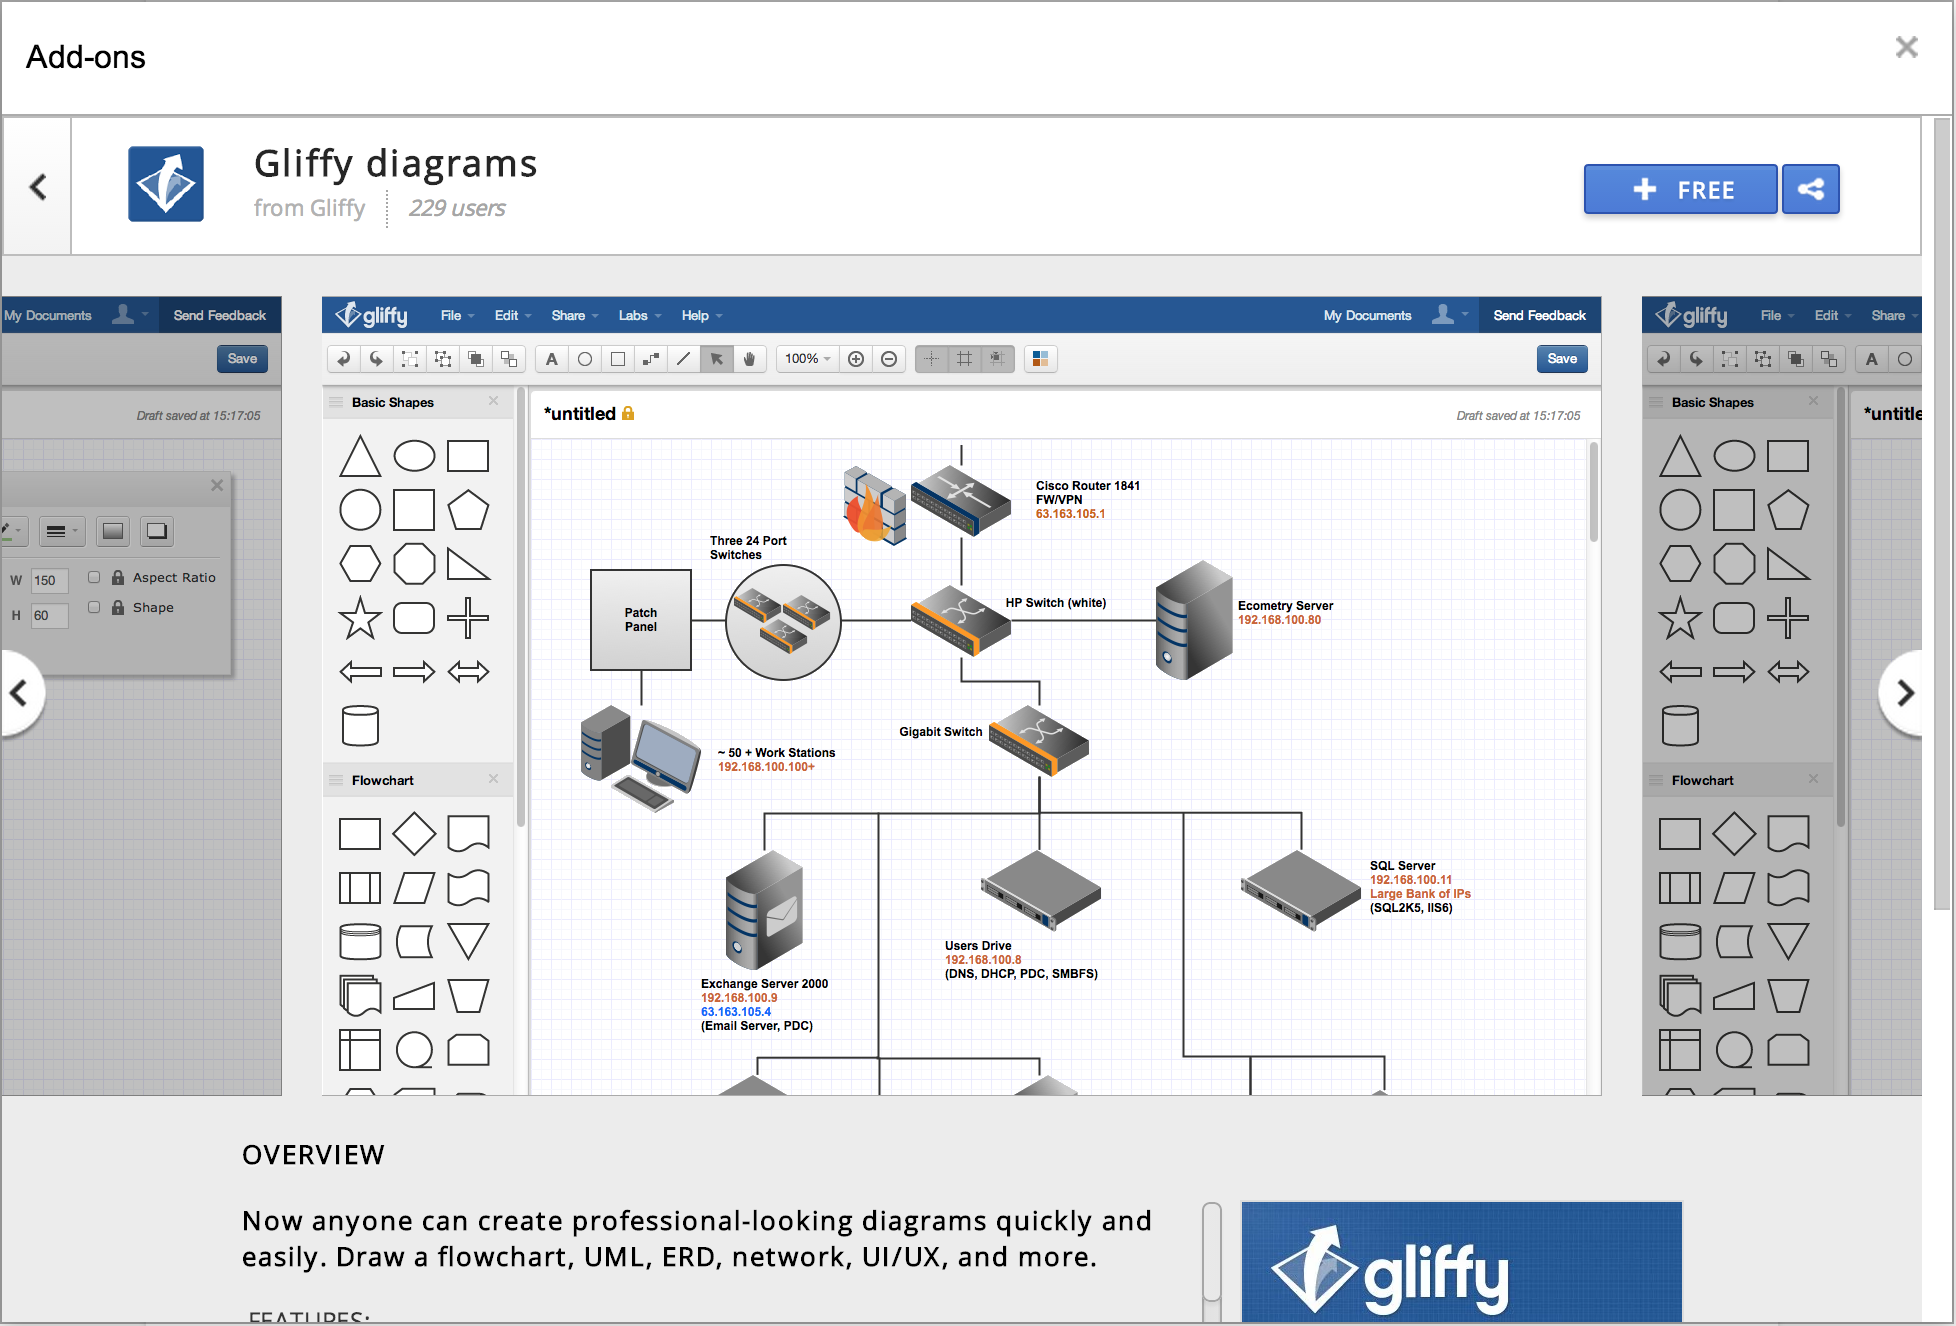 gliffy-diagrams-listing.png